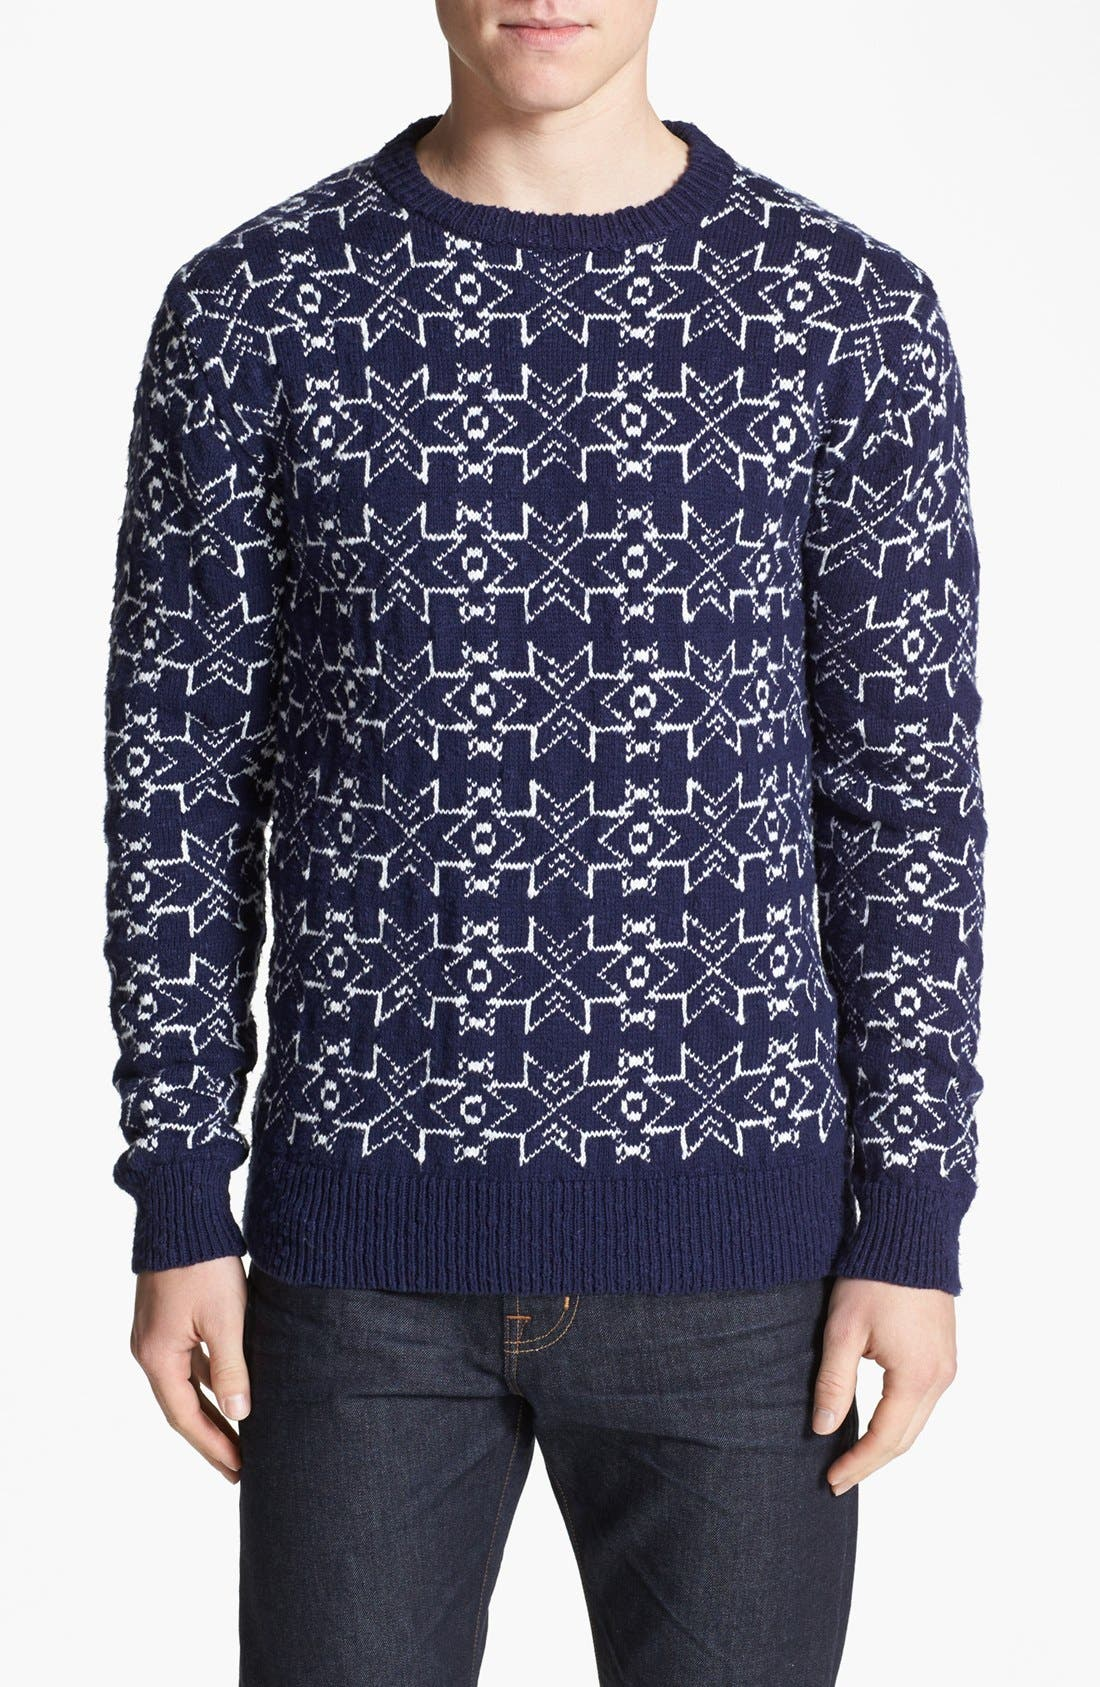 Alternate Image 1 Selected - French Connection 'Flagstaff' Sweater